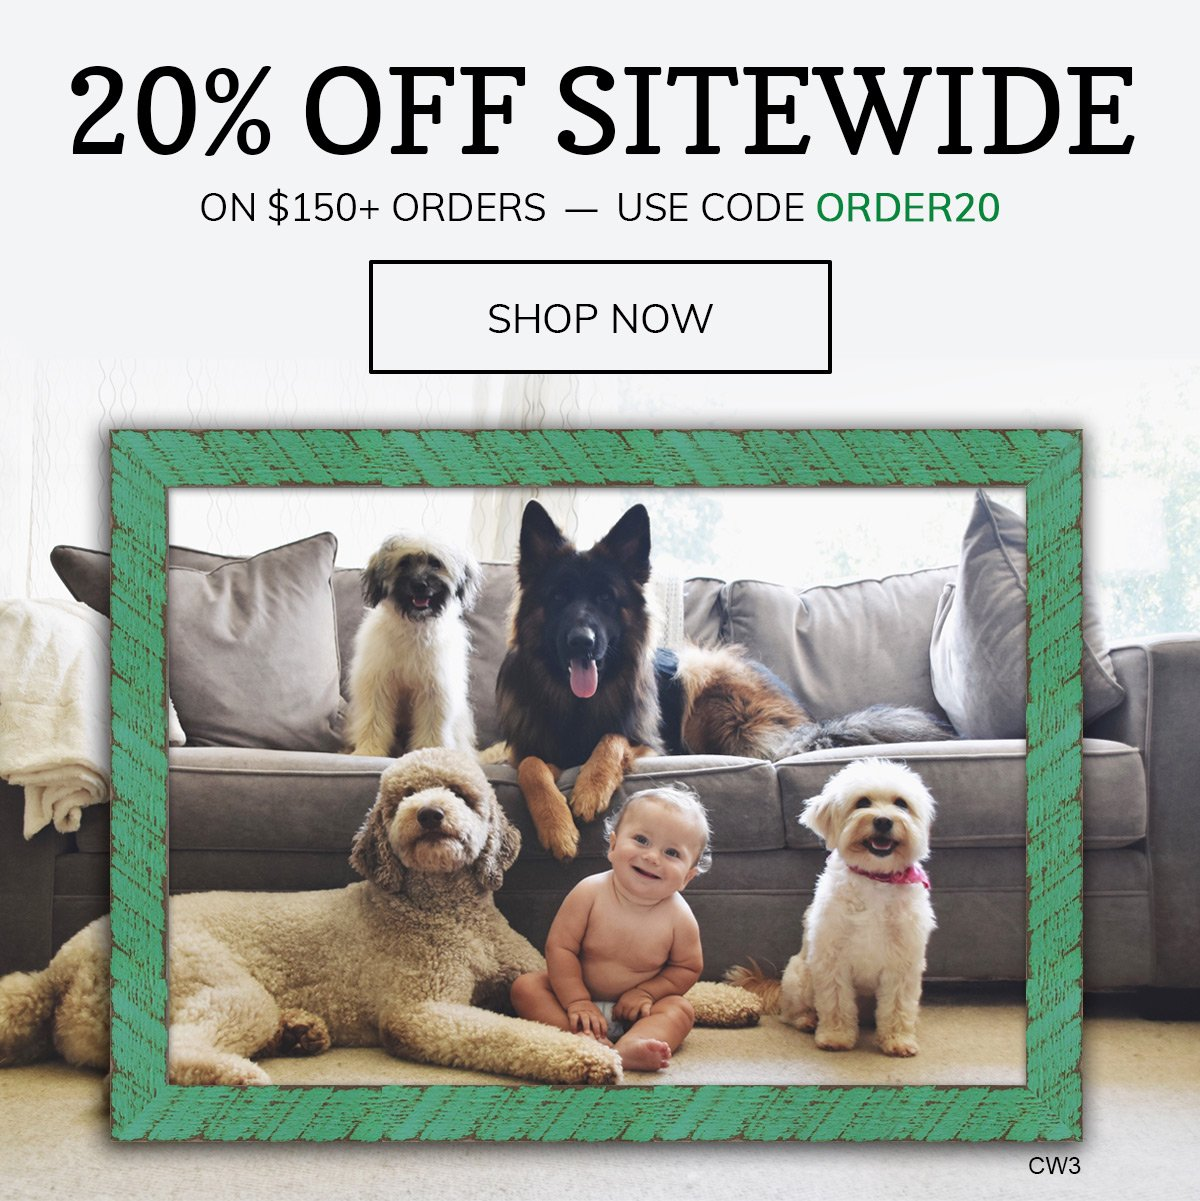 Save 20% on $150+ Orders! Use Code ORDER20.